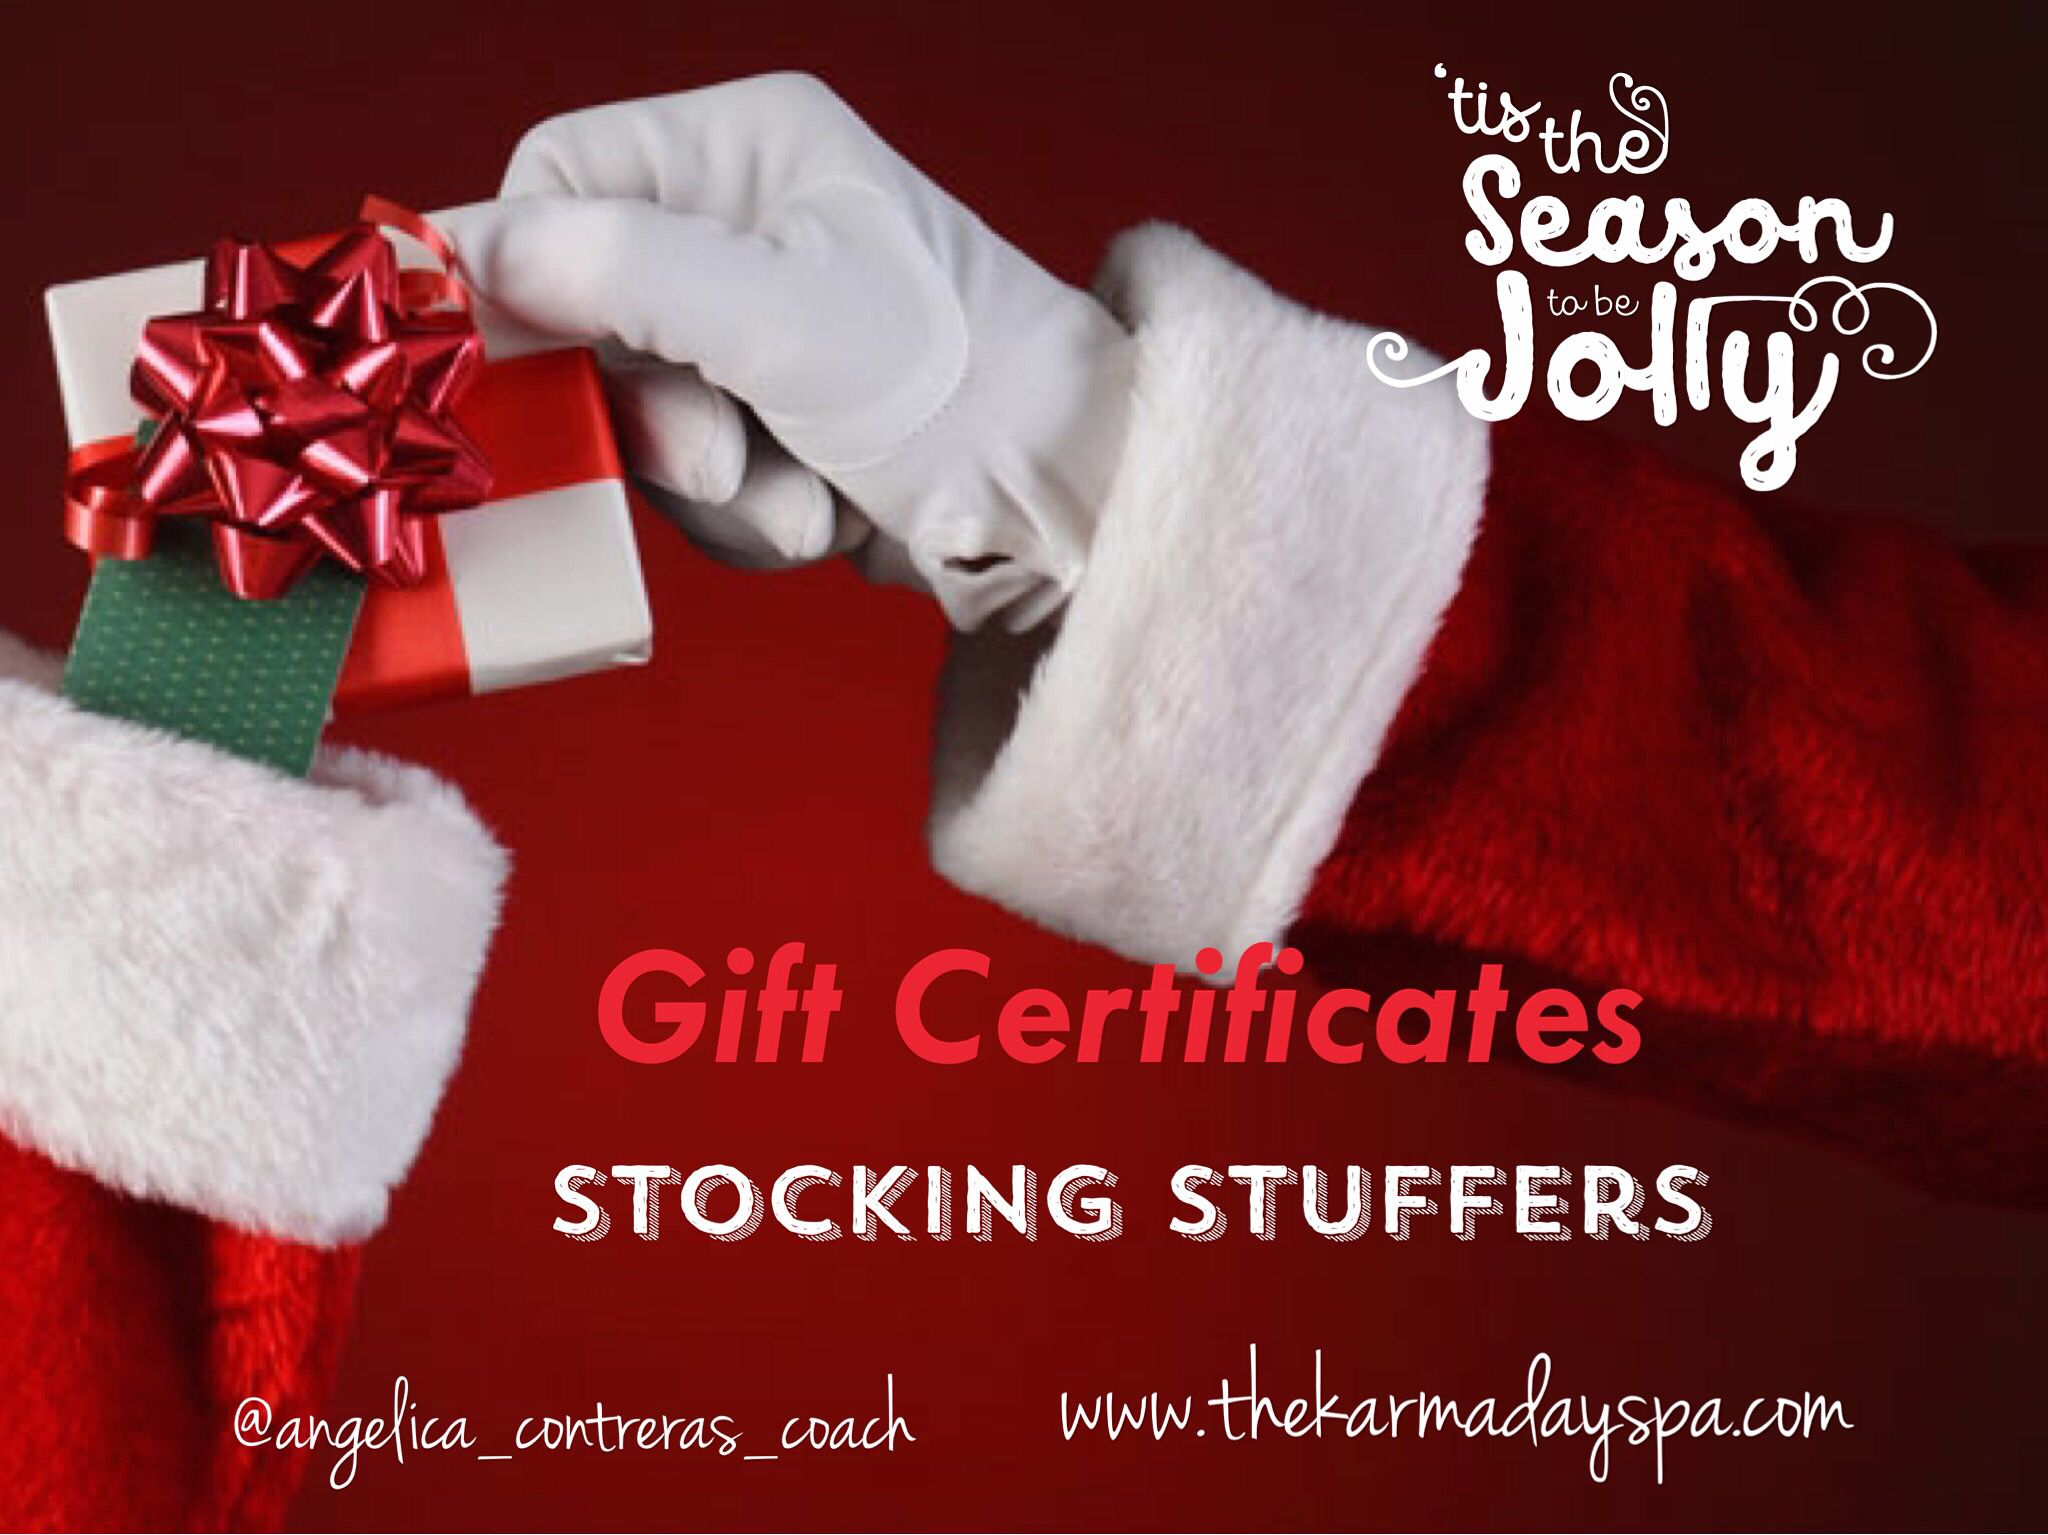 best ideas about online gift certificates online 17 best ideas about online gift certificates online gift cards rodan and fields products and rodan and fields business